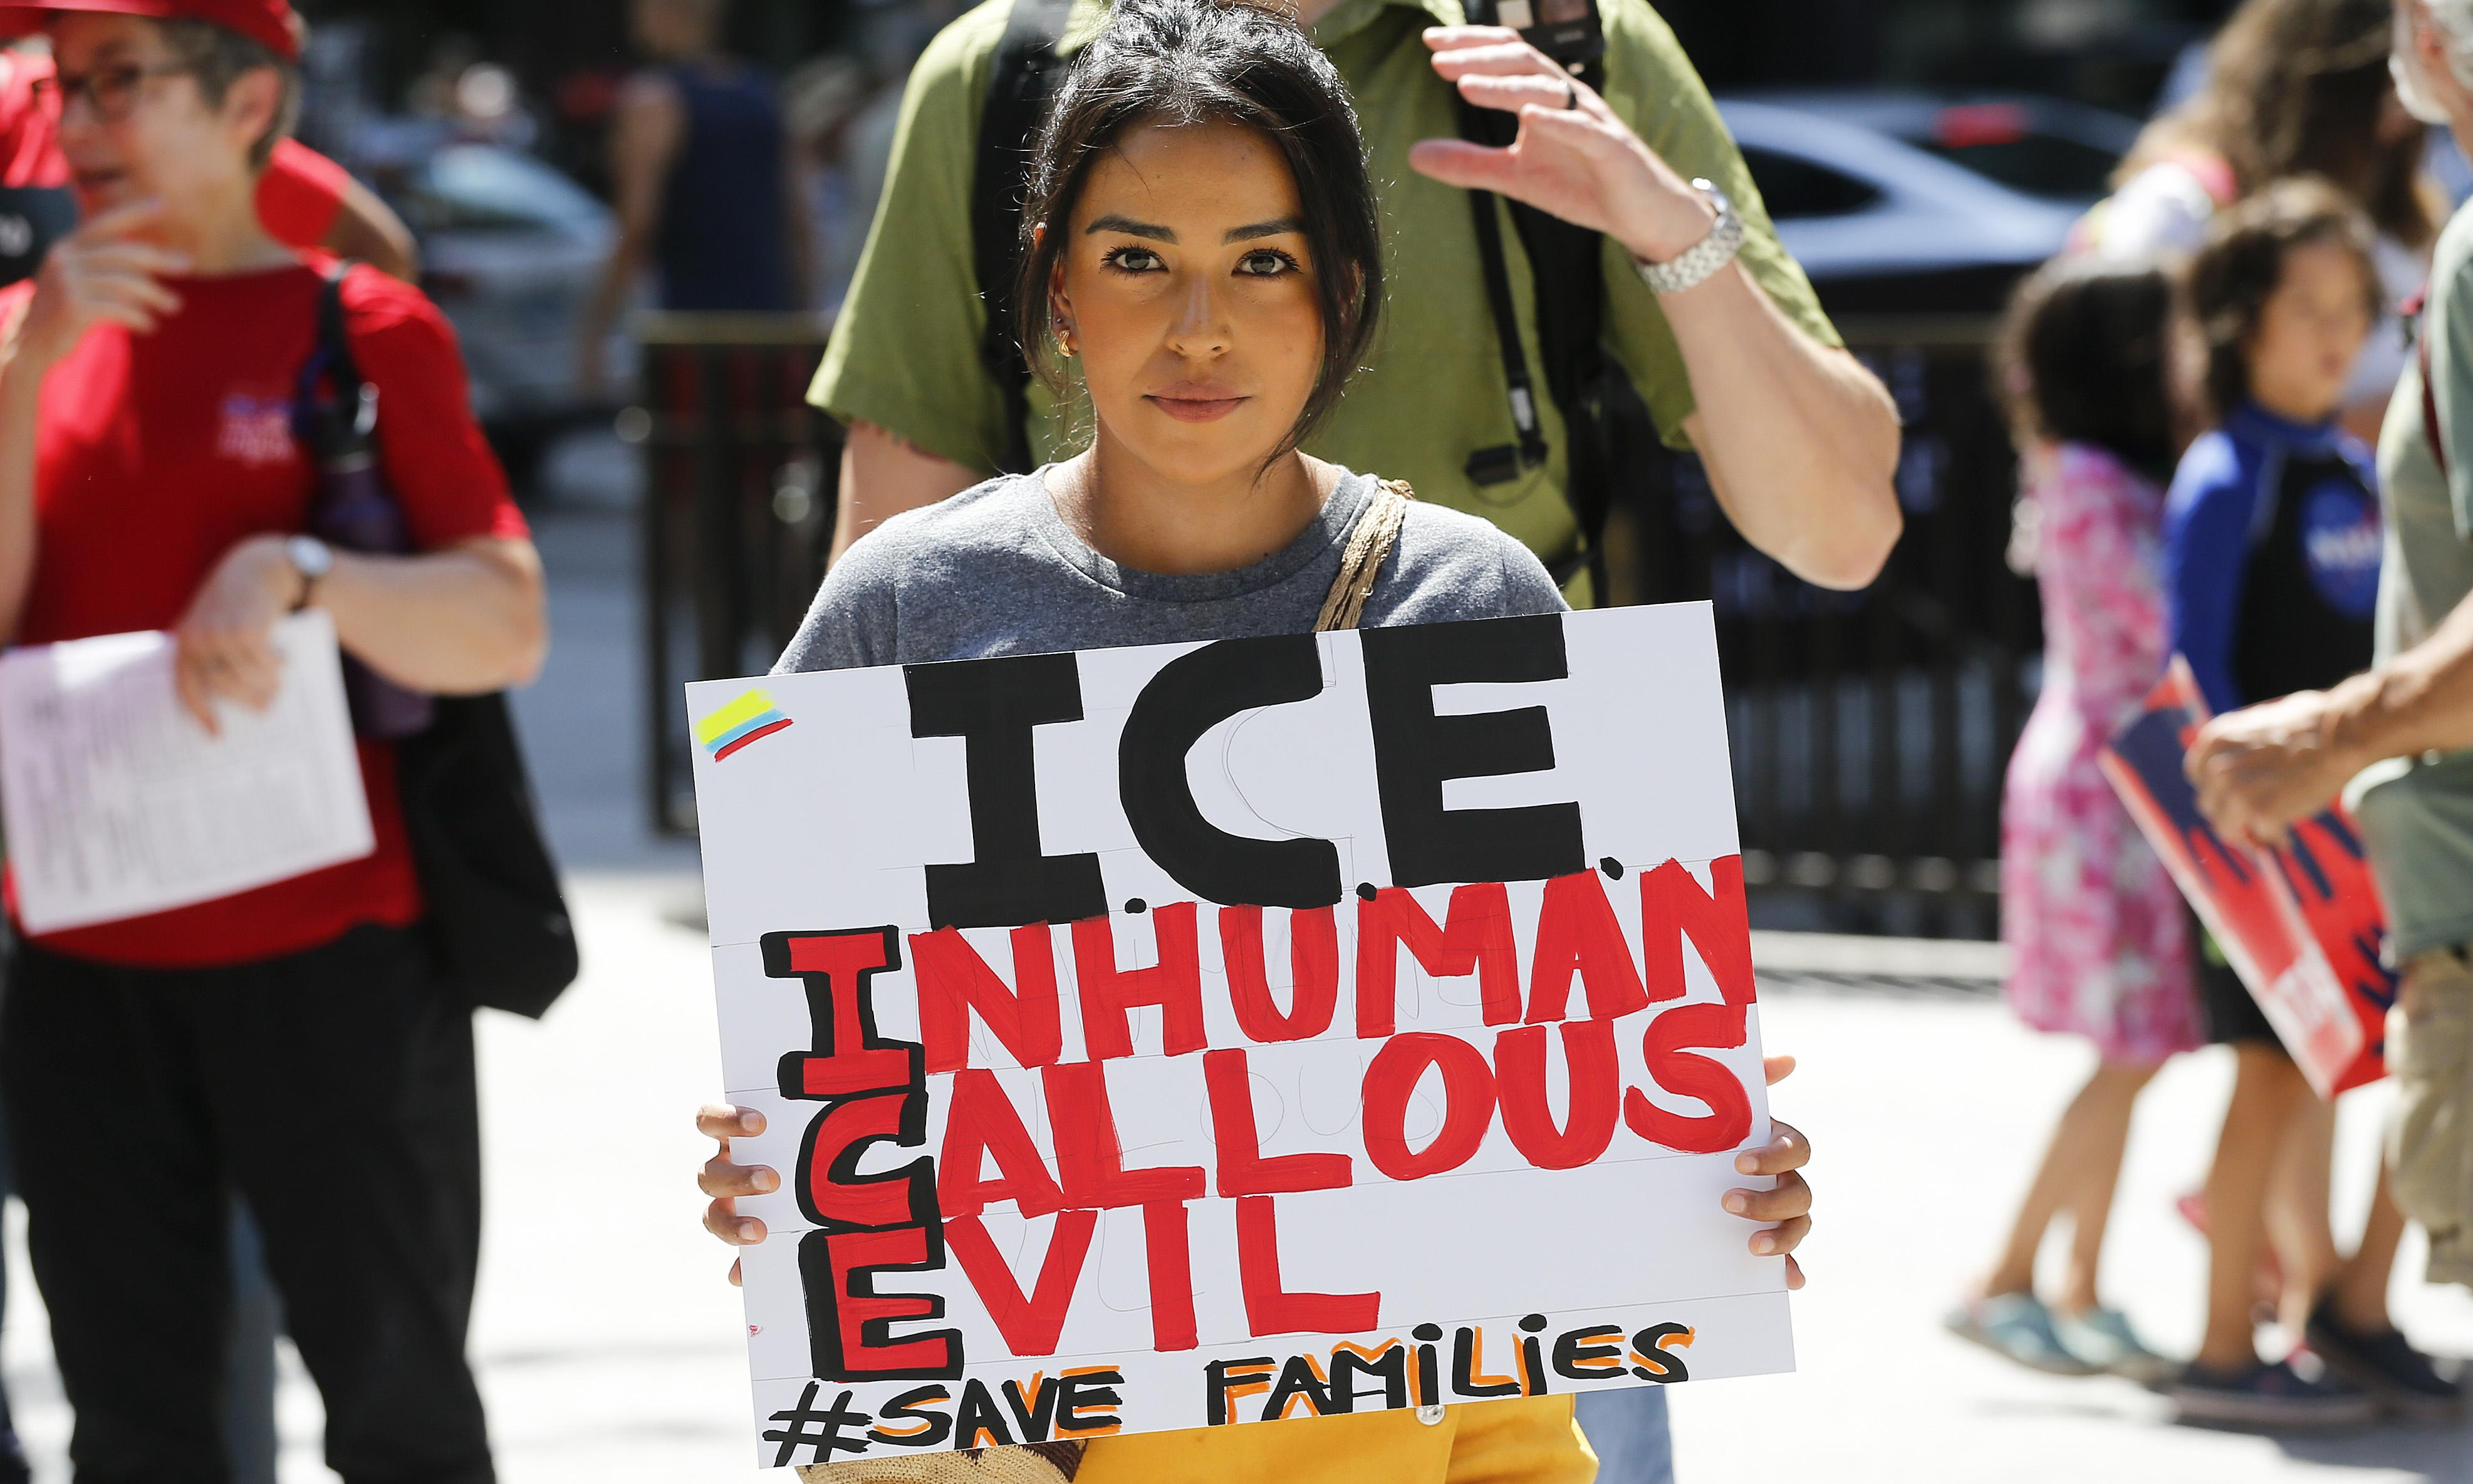 Prospect of immigration raids across US spark anxiety, anger and protests